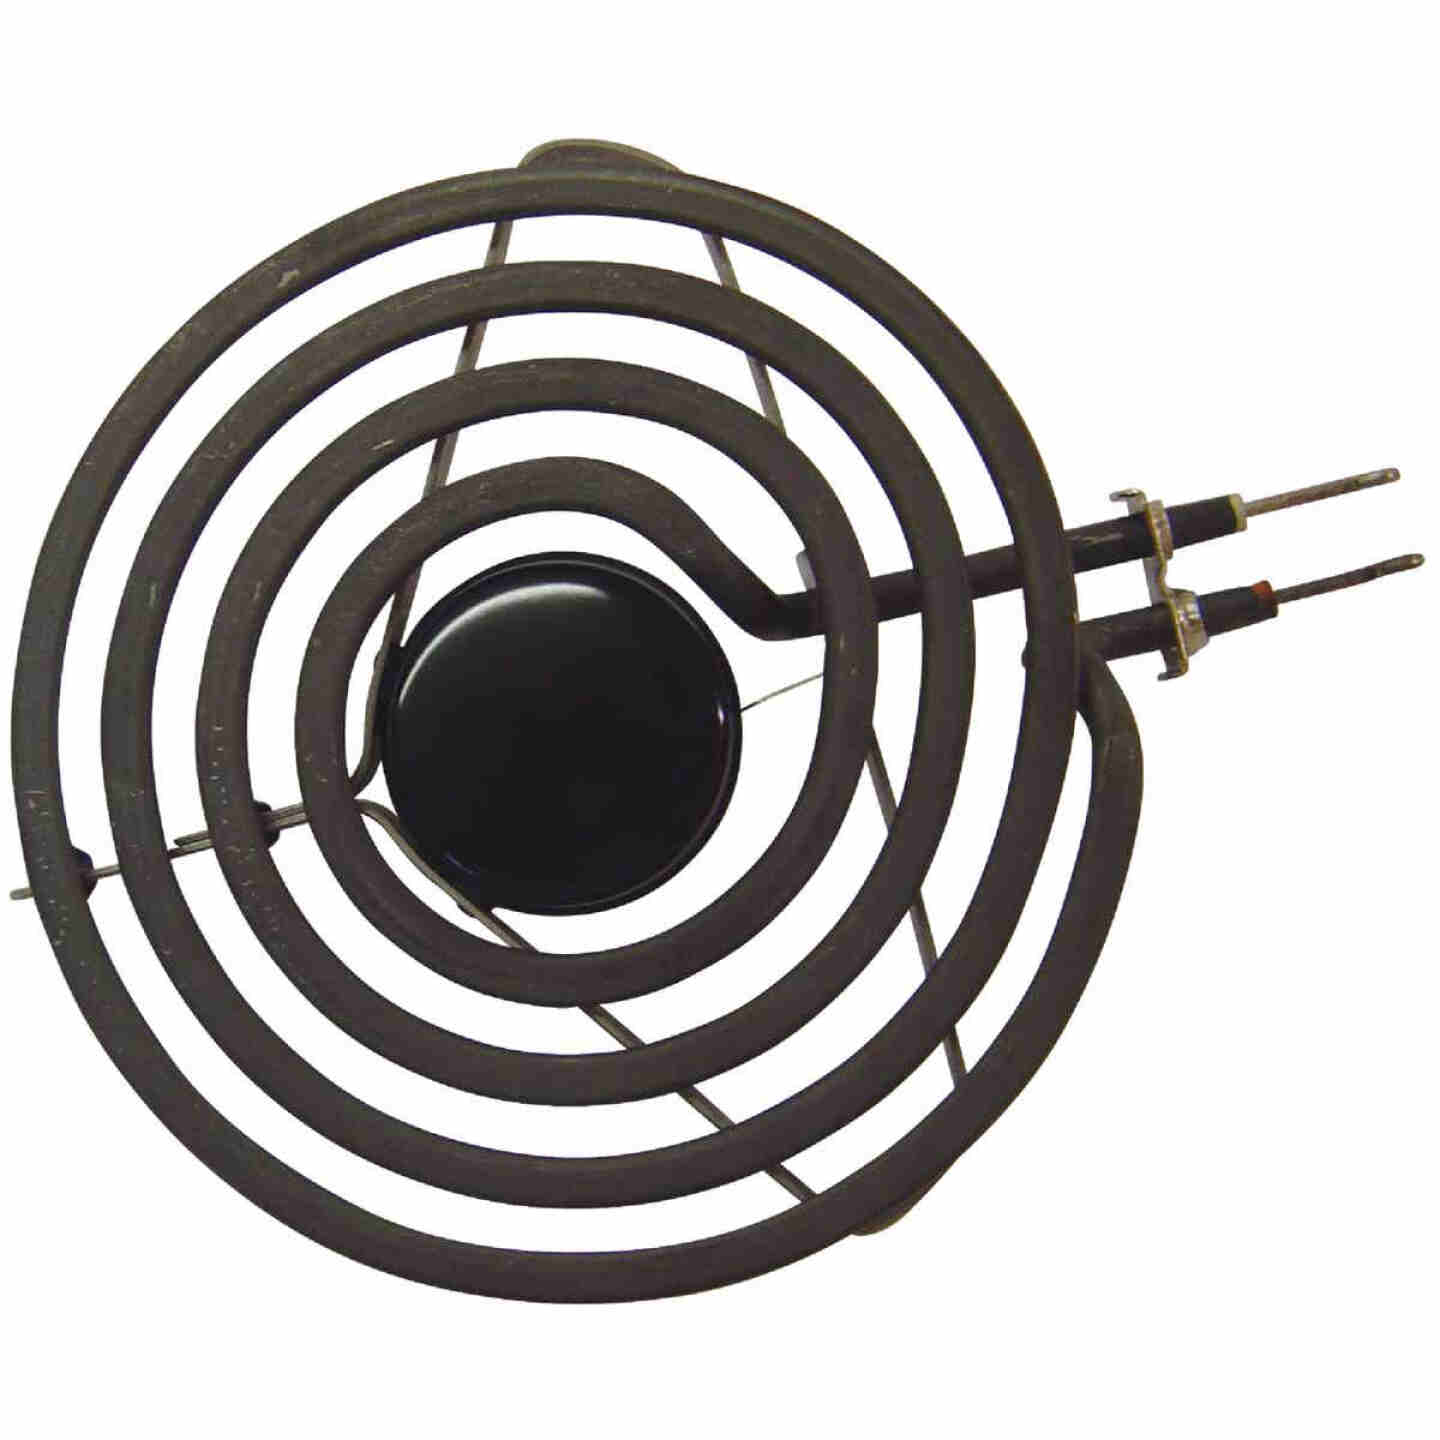 Range Kleen Style A 6 In. 4-Coil Plug-in Range Element with Delta Bracket Image 1